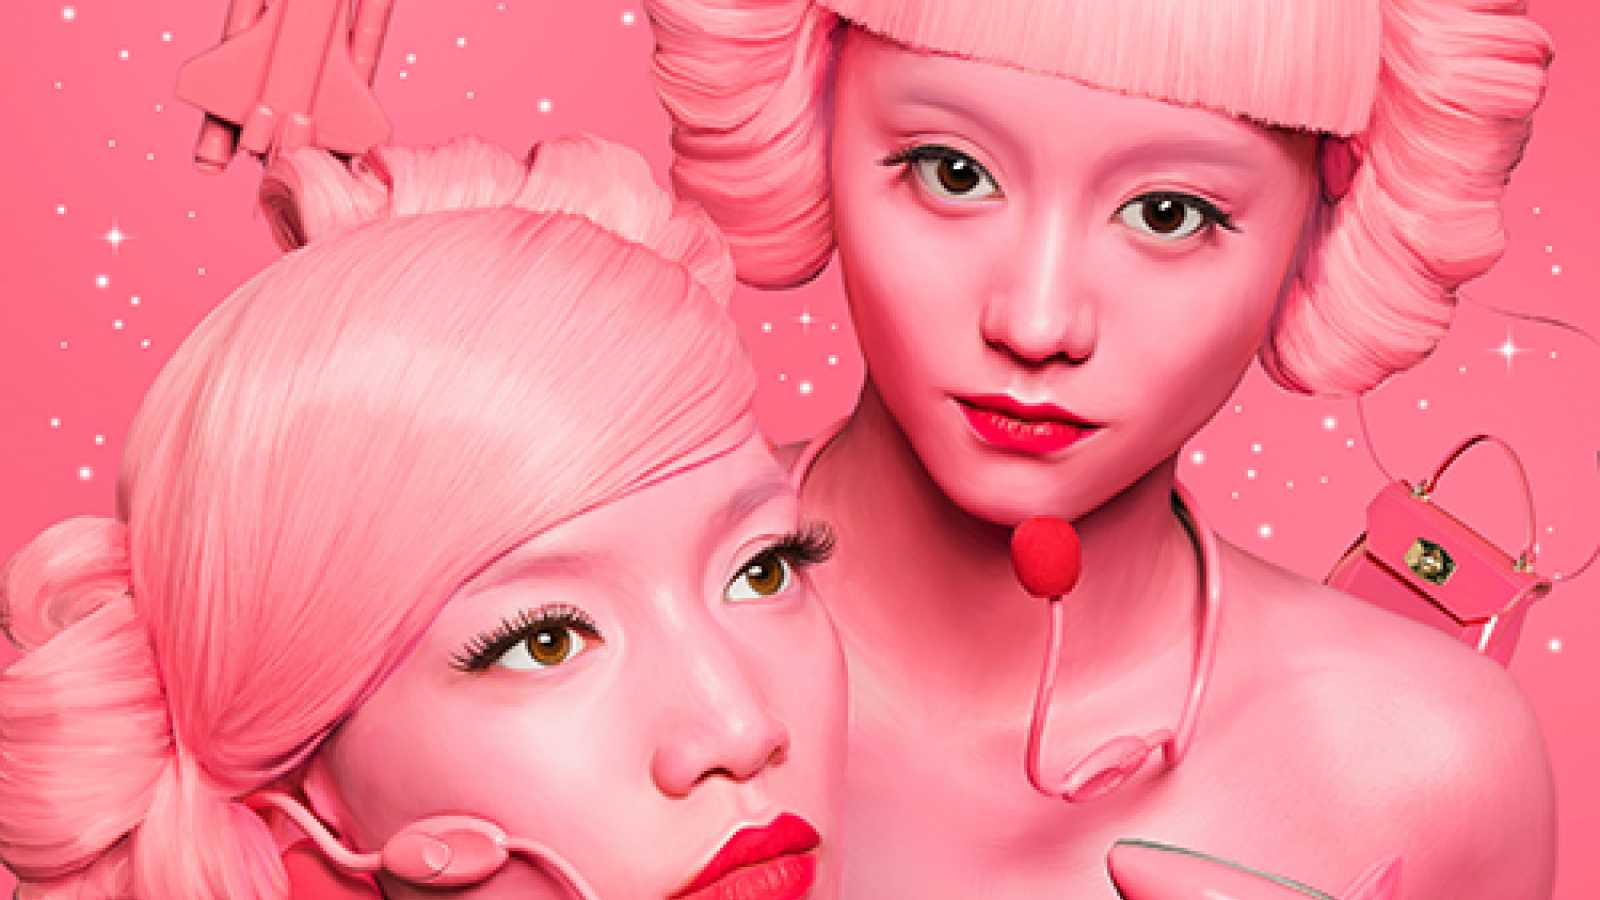 FEMM Features on Duke of Harajuku's First Album © FEMM. All rights reserved.